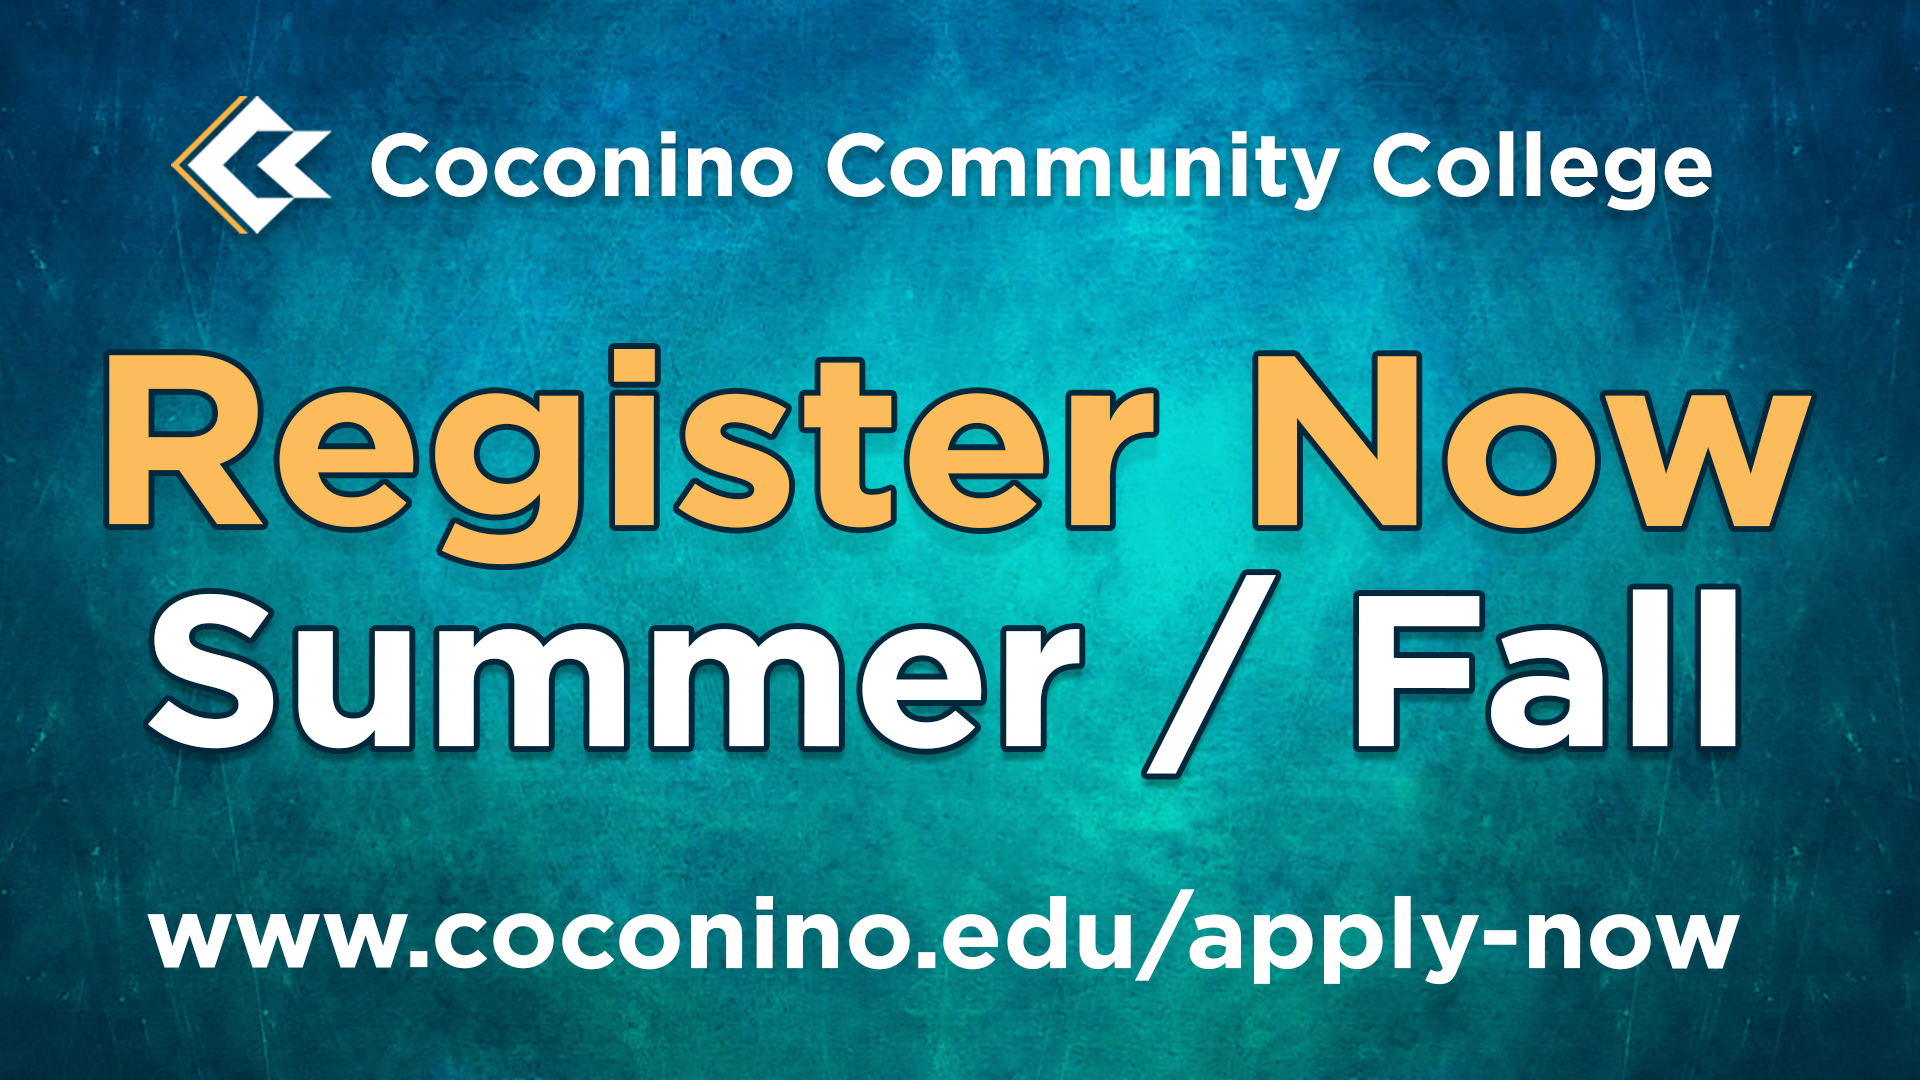 Fall Classes Begin at CCC presented by Coconino Community